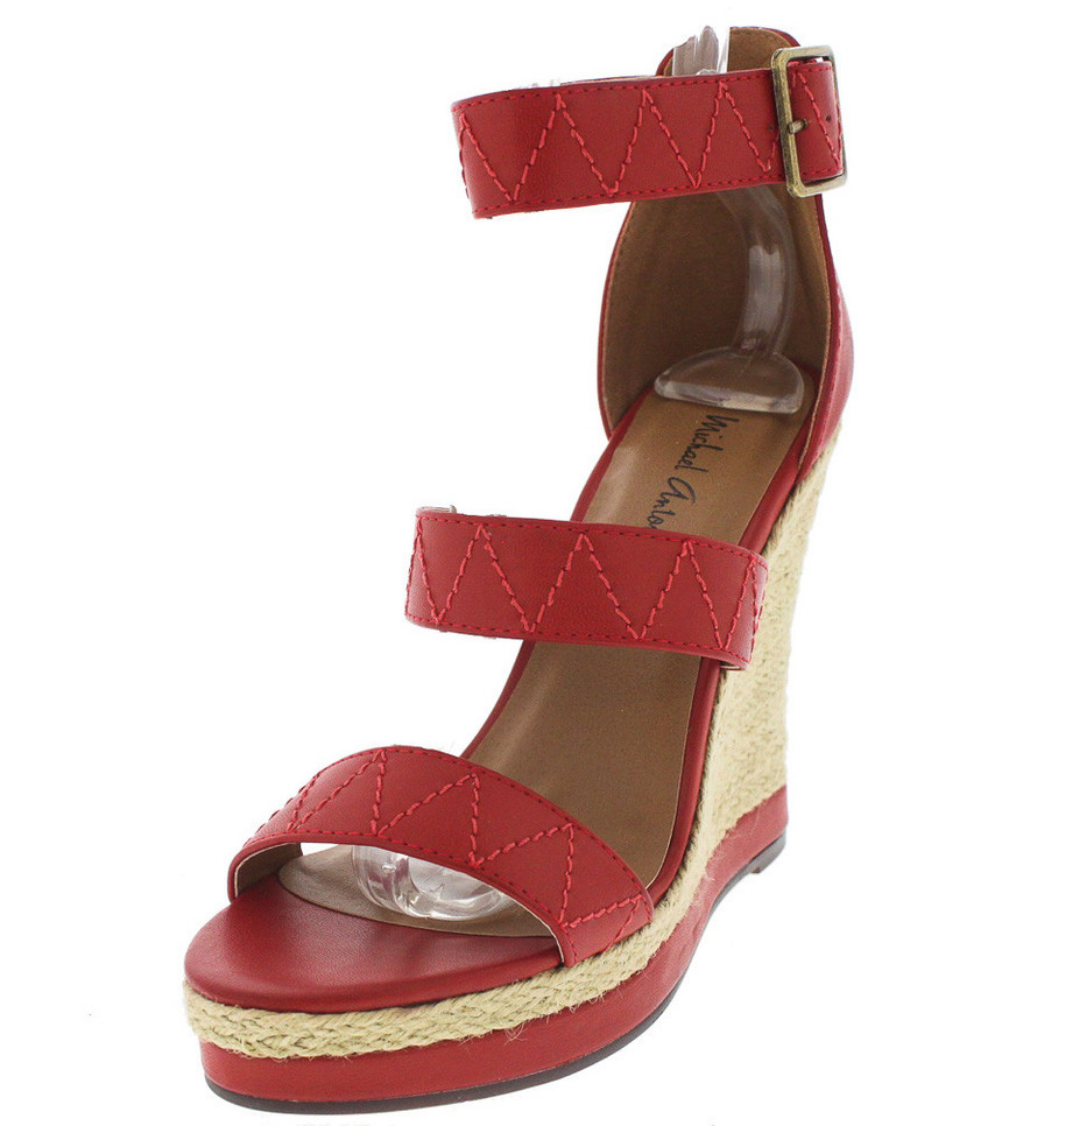 Coral Red Wedge